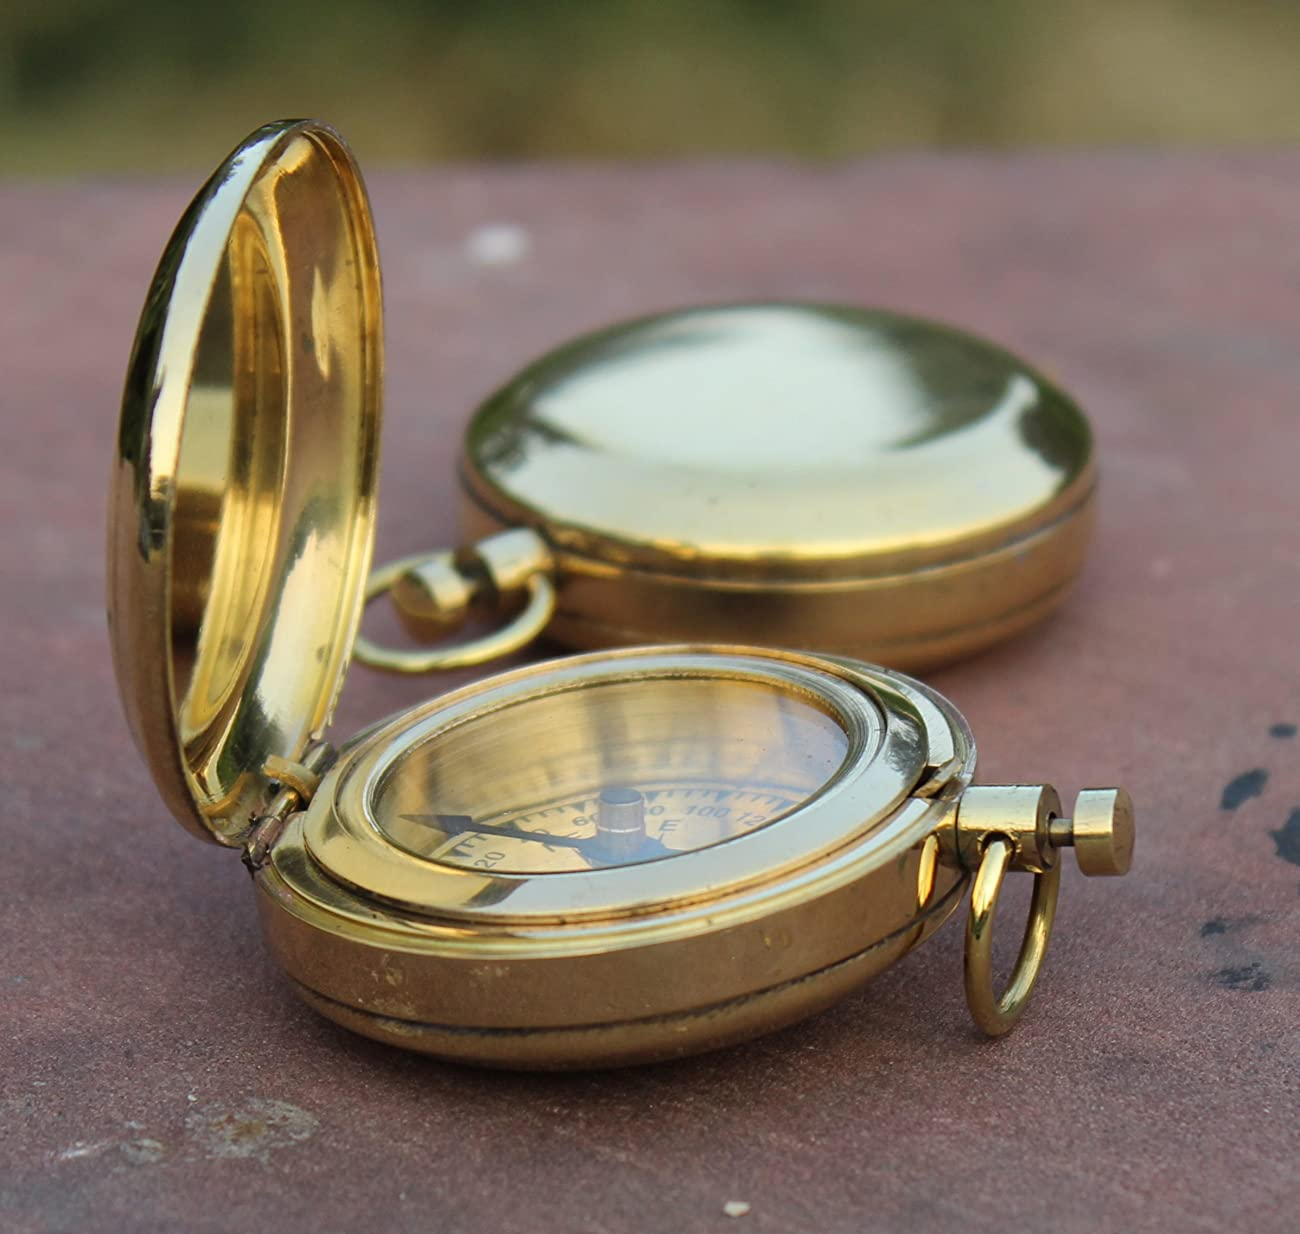 Nautical Collectible Retro Style Compass Decorative Gift Item Brass Finish Compass 0